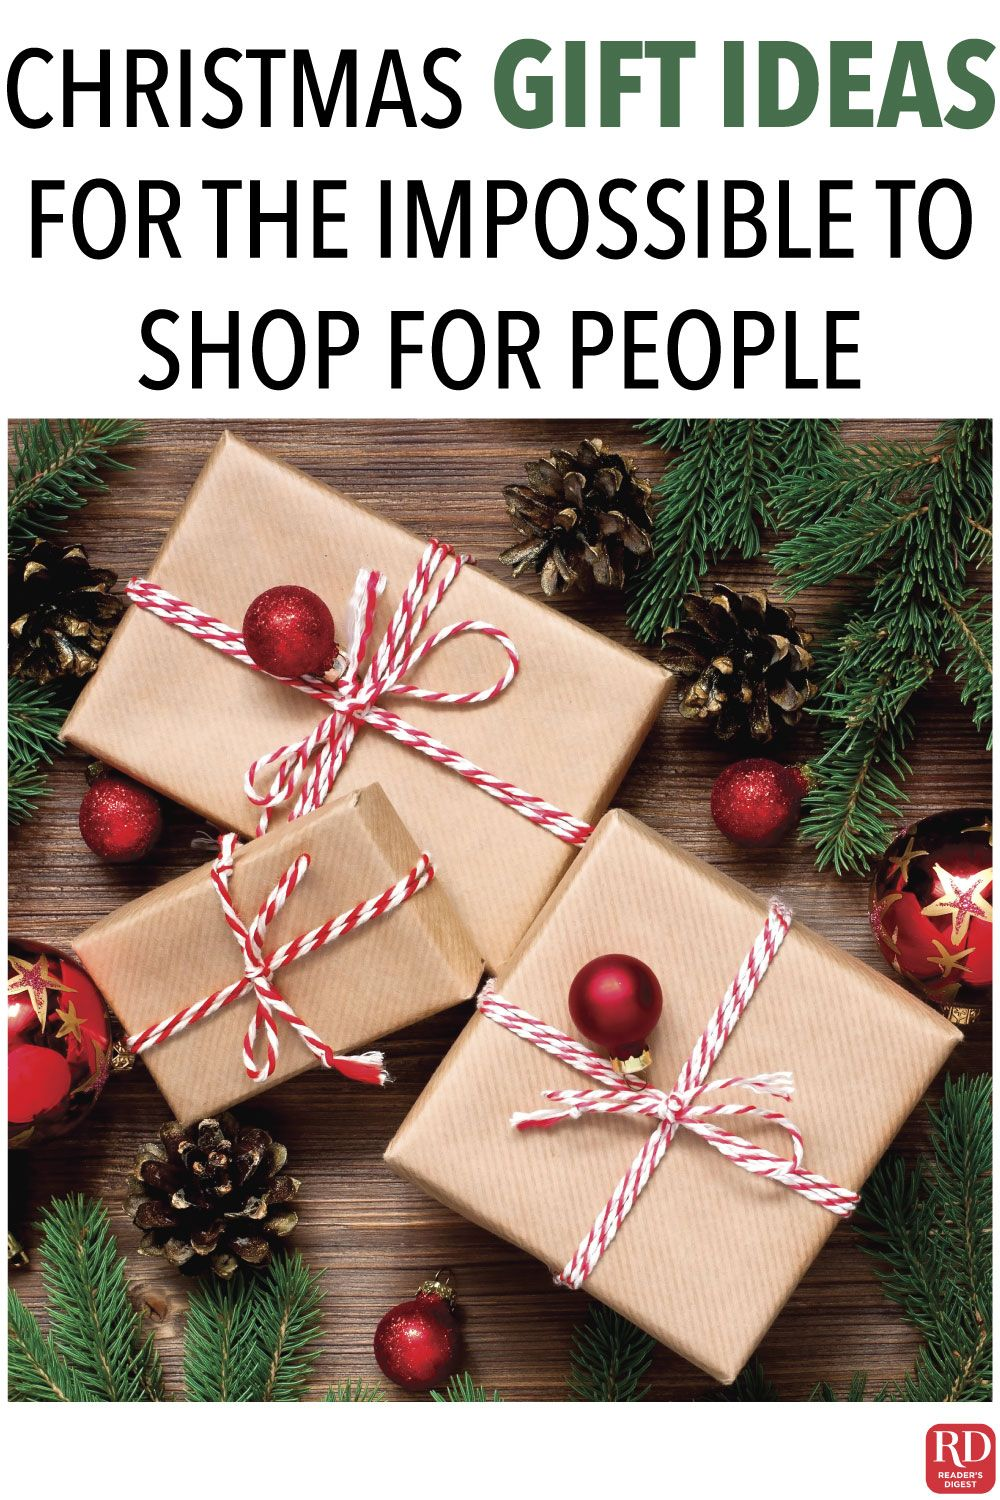 101 Christmas Gift Ideas for People Who Are Impossible to Shop For — We've got the most complicated people on your list covered this year with a full 101 Christmas gift ideas (and other holidays too!) that are sure to please. #Christmas #ChristmasGiftIdeas #TheHolidays #GiftIdeas #ChristmasGift #HolidayGifts